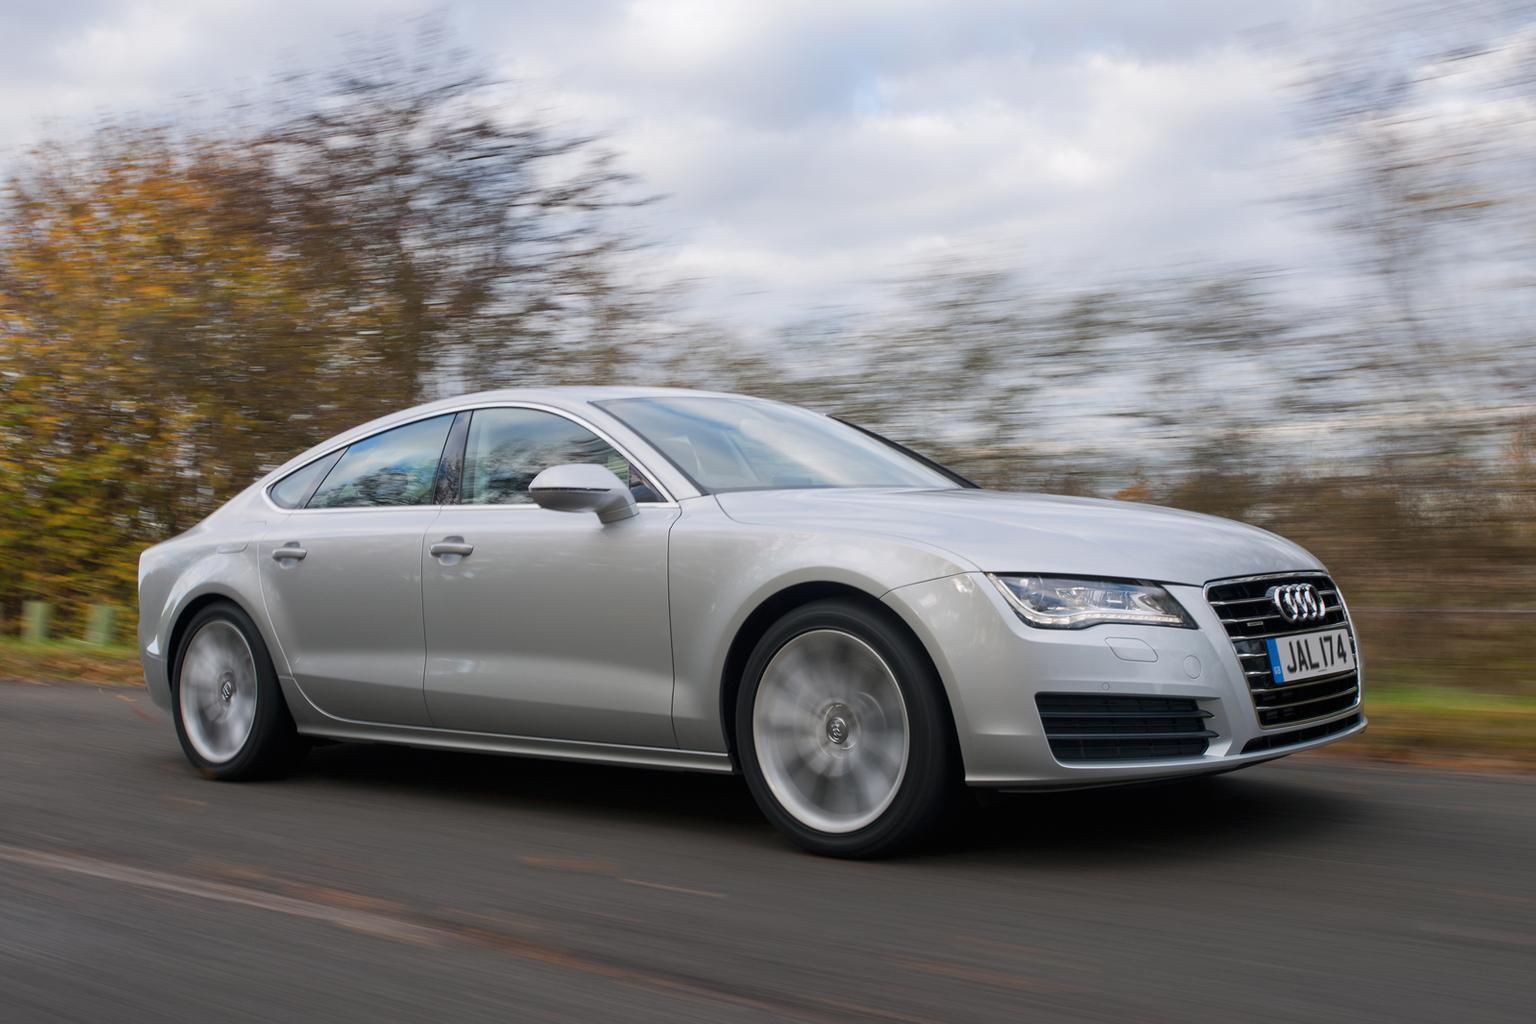 Hydrogen-powered Audi to appear in 2014